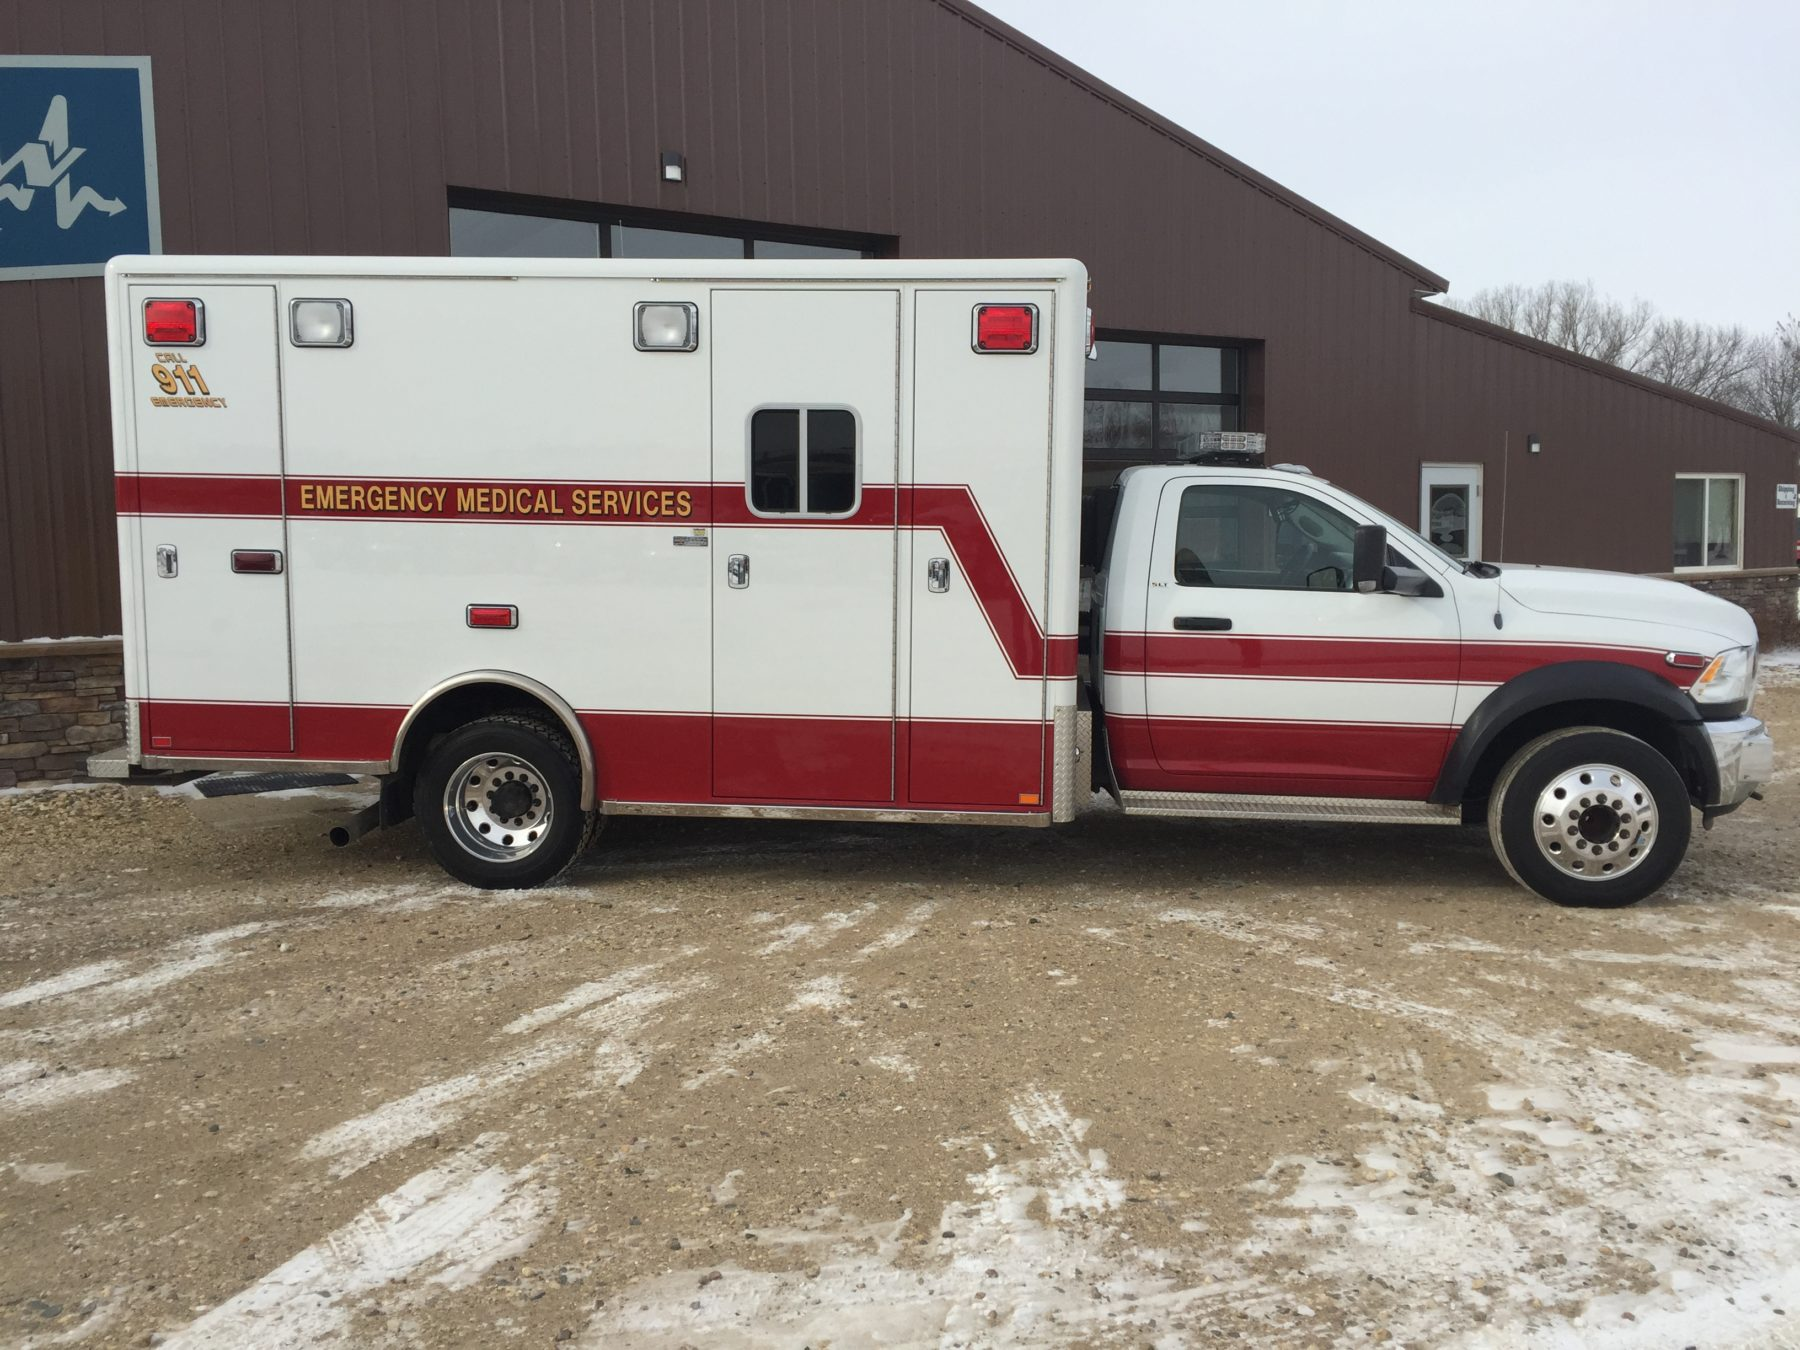 2012 Dodge 4500 Heavy Duty Ambulance For Sale – Picture 4